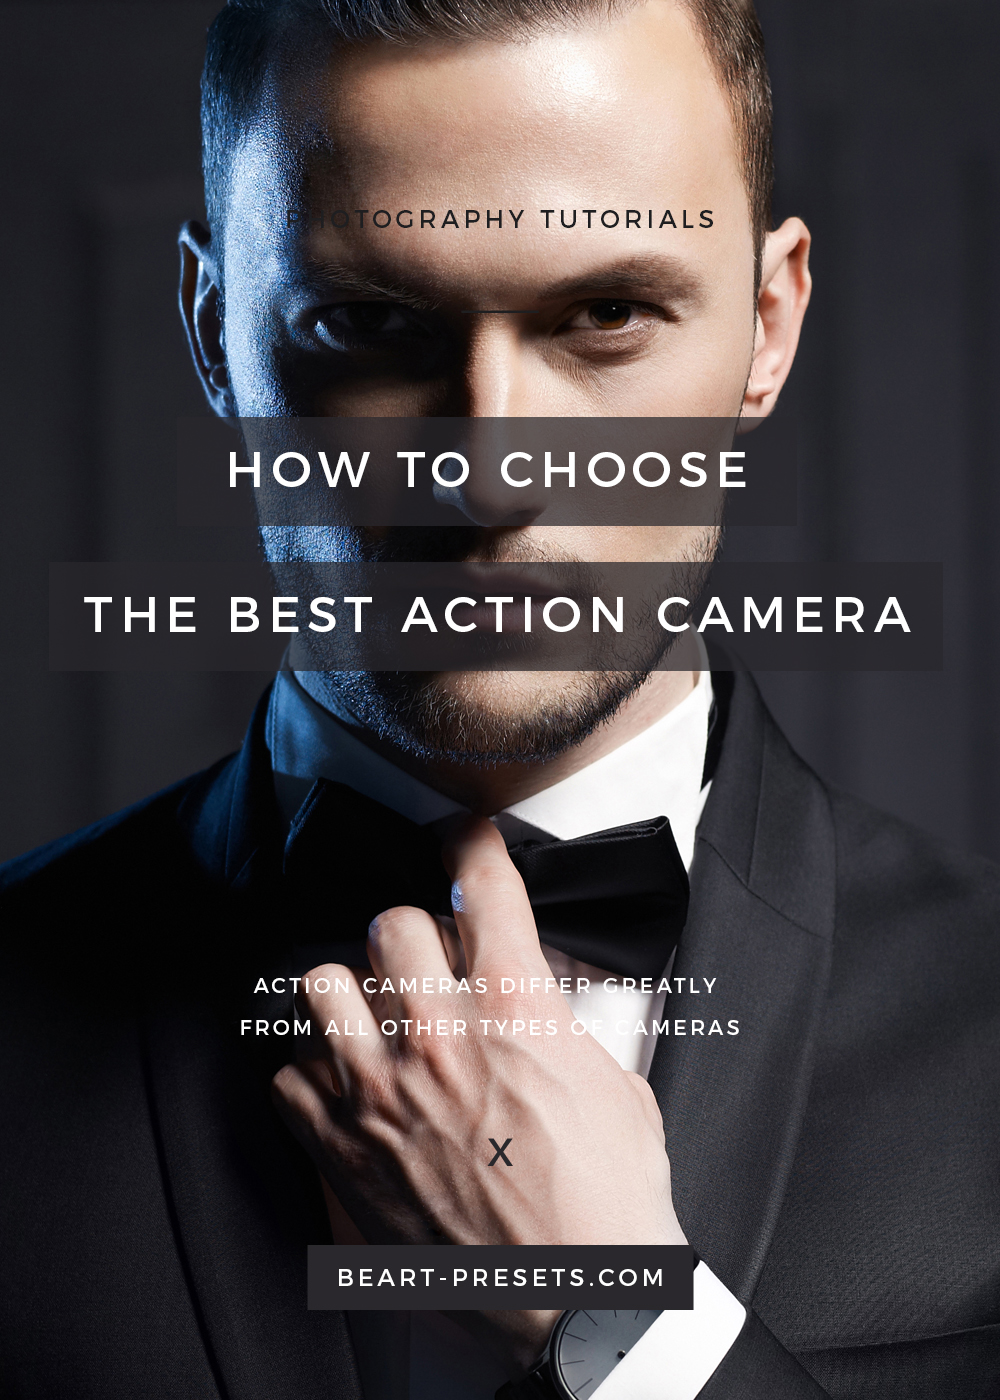 How to choose the best action camera 2017